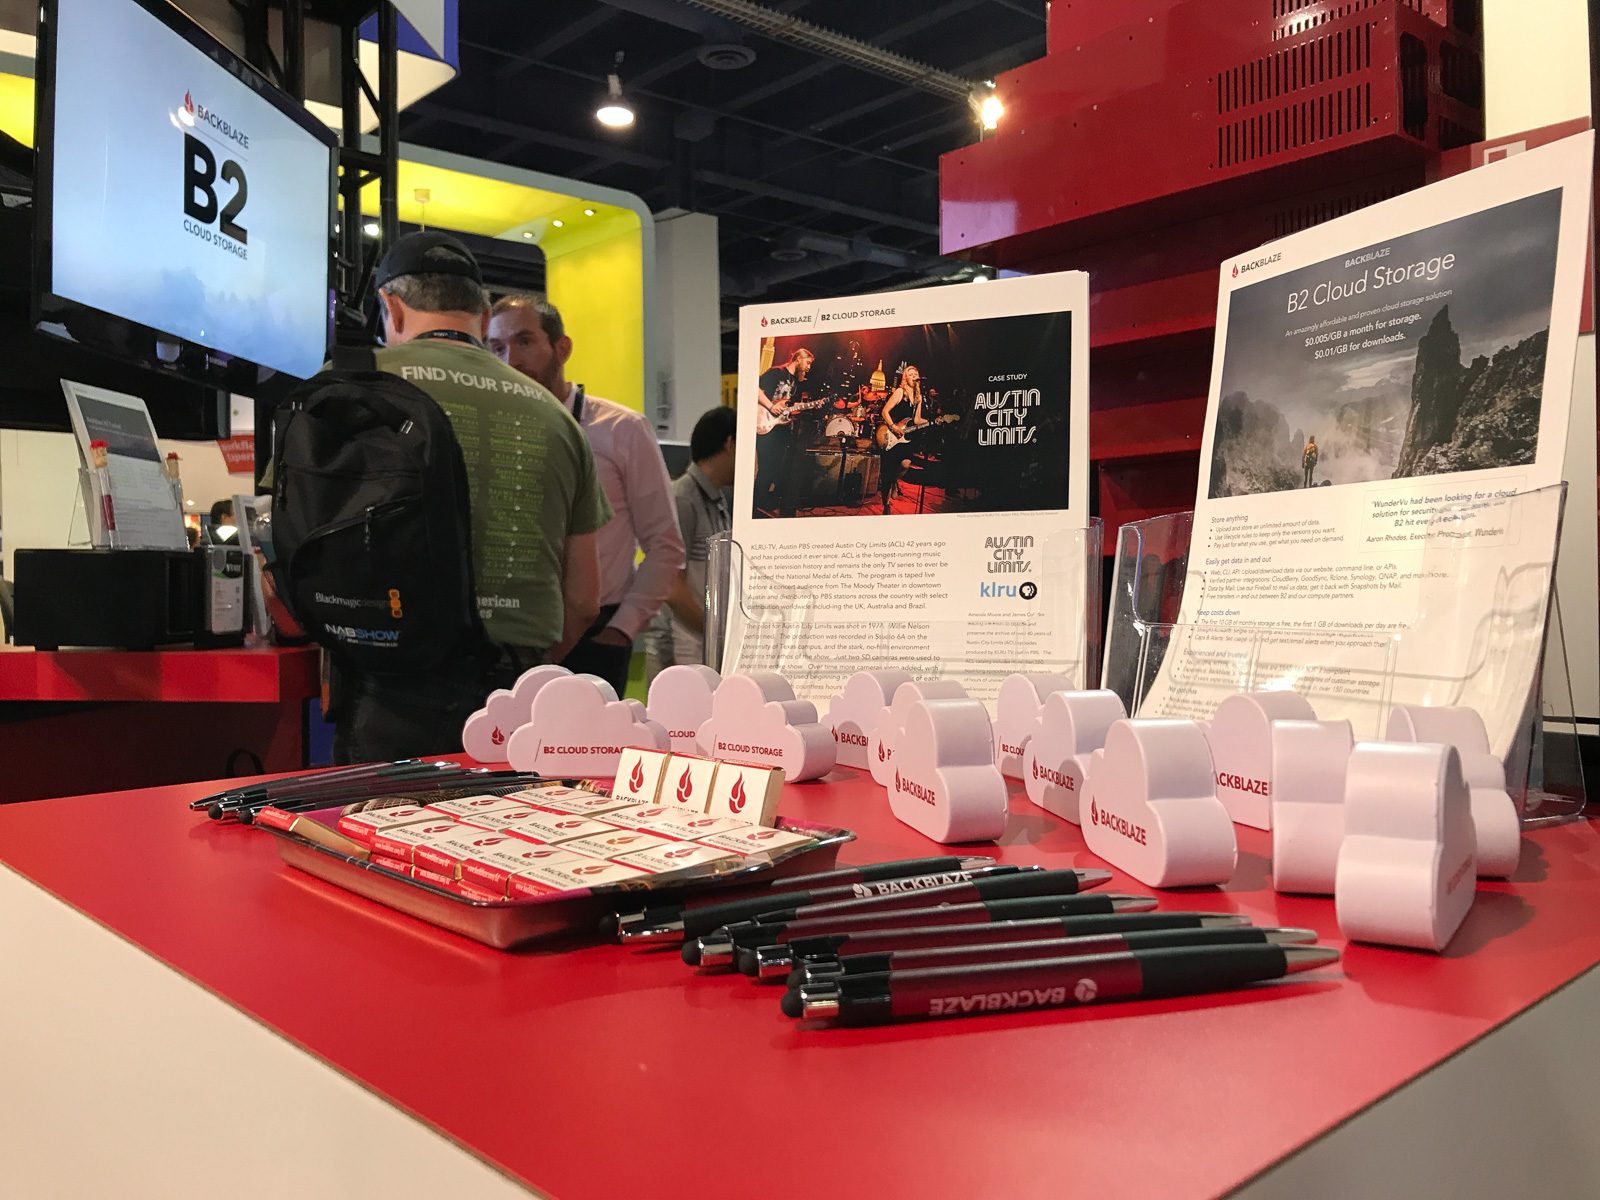 Backblaze Case Studies and Swag at NAB 2018 in Las Vegas